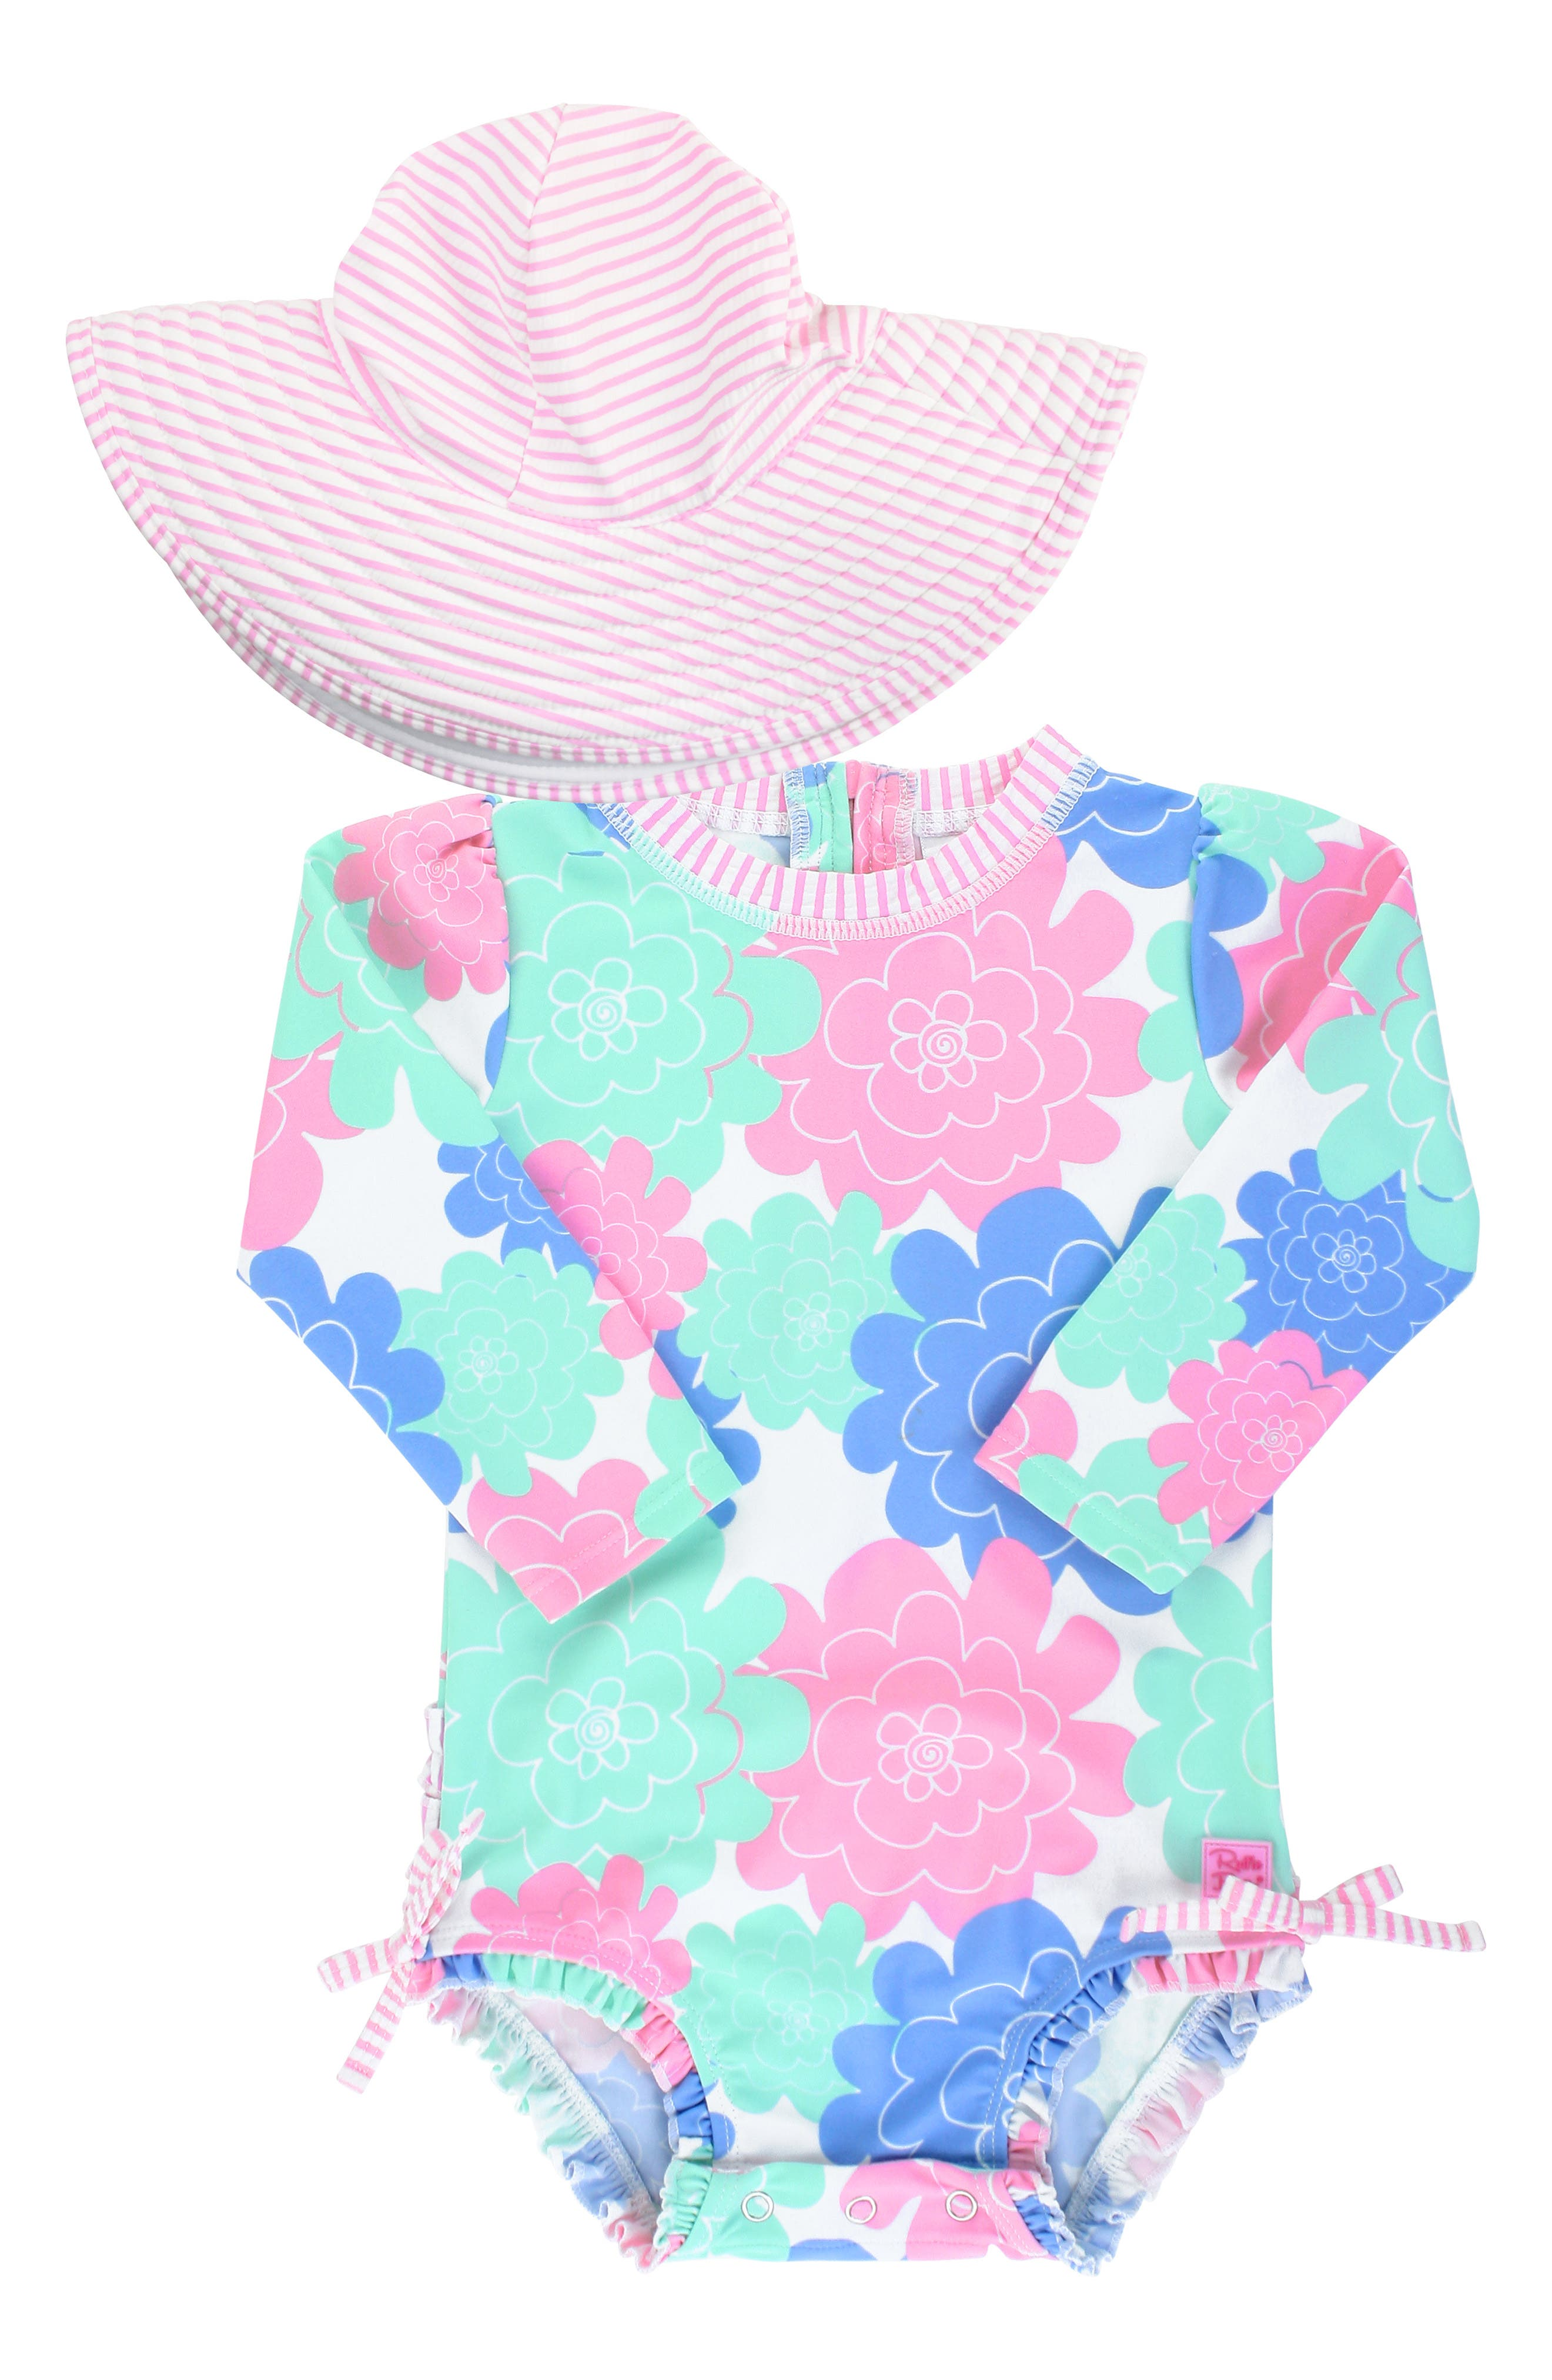 Pastel flowers and ruffled trim add ample retro charm to a beach-ready rashguard swimsuit paired with an adorable floppy hat for extra sun protection. Style Name: Rufflebutts Pastels One-Piece Rashguard Swimsuit & Floppy Hat Set (Baby). Style Number: 5938568. Available in stores.